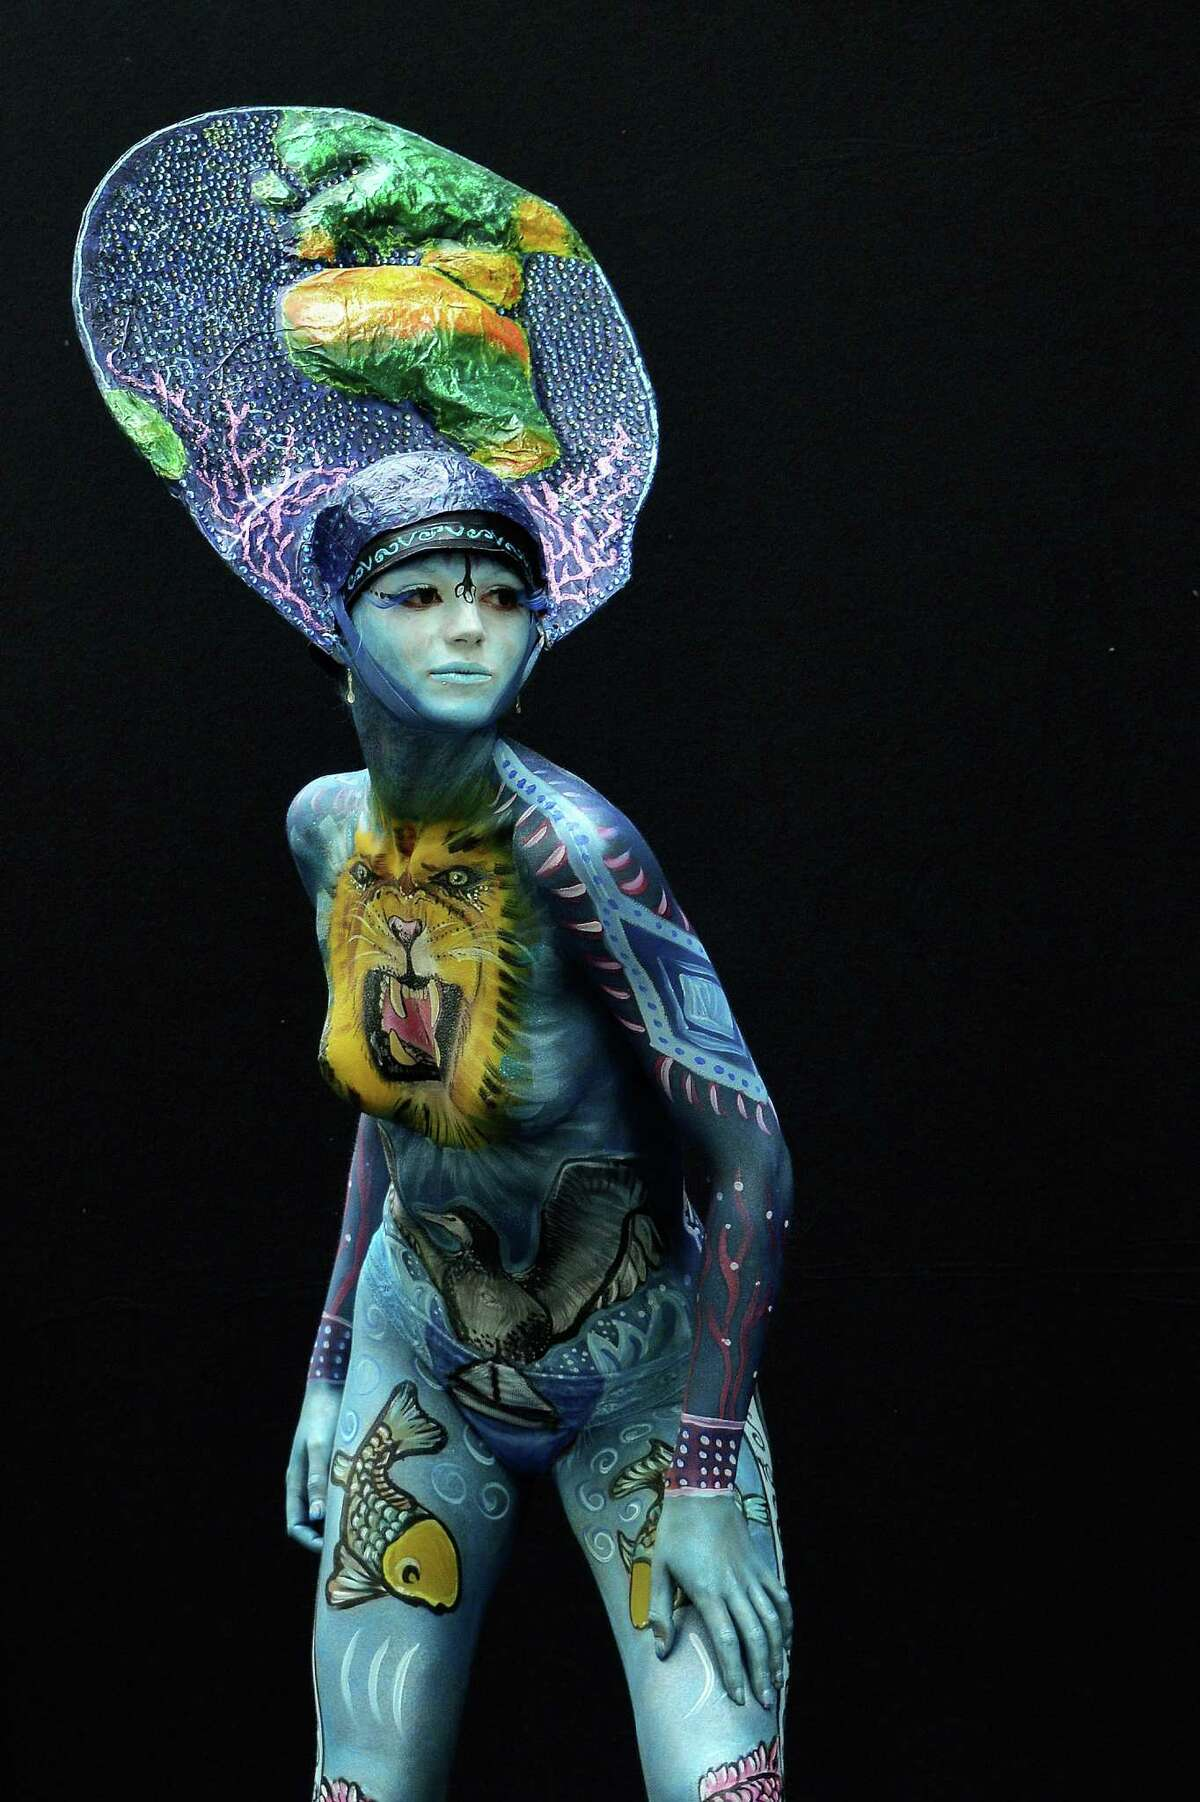 A participant poses with her body paintings designed by bodypainting artist Magali Couset during the 16th World Bodypainting Festival on July 5, 2013 in Poertschach am Woerthersee, Austria.